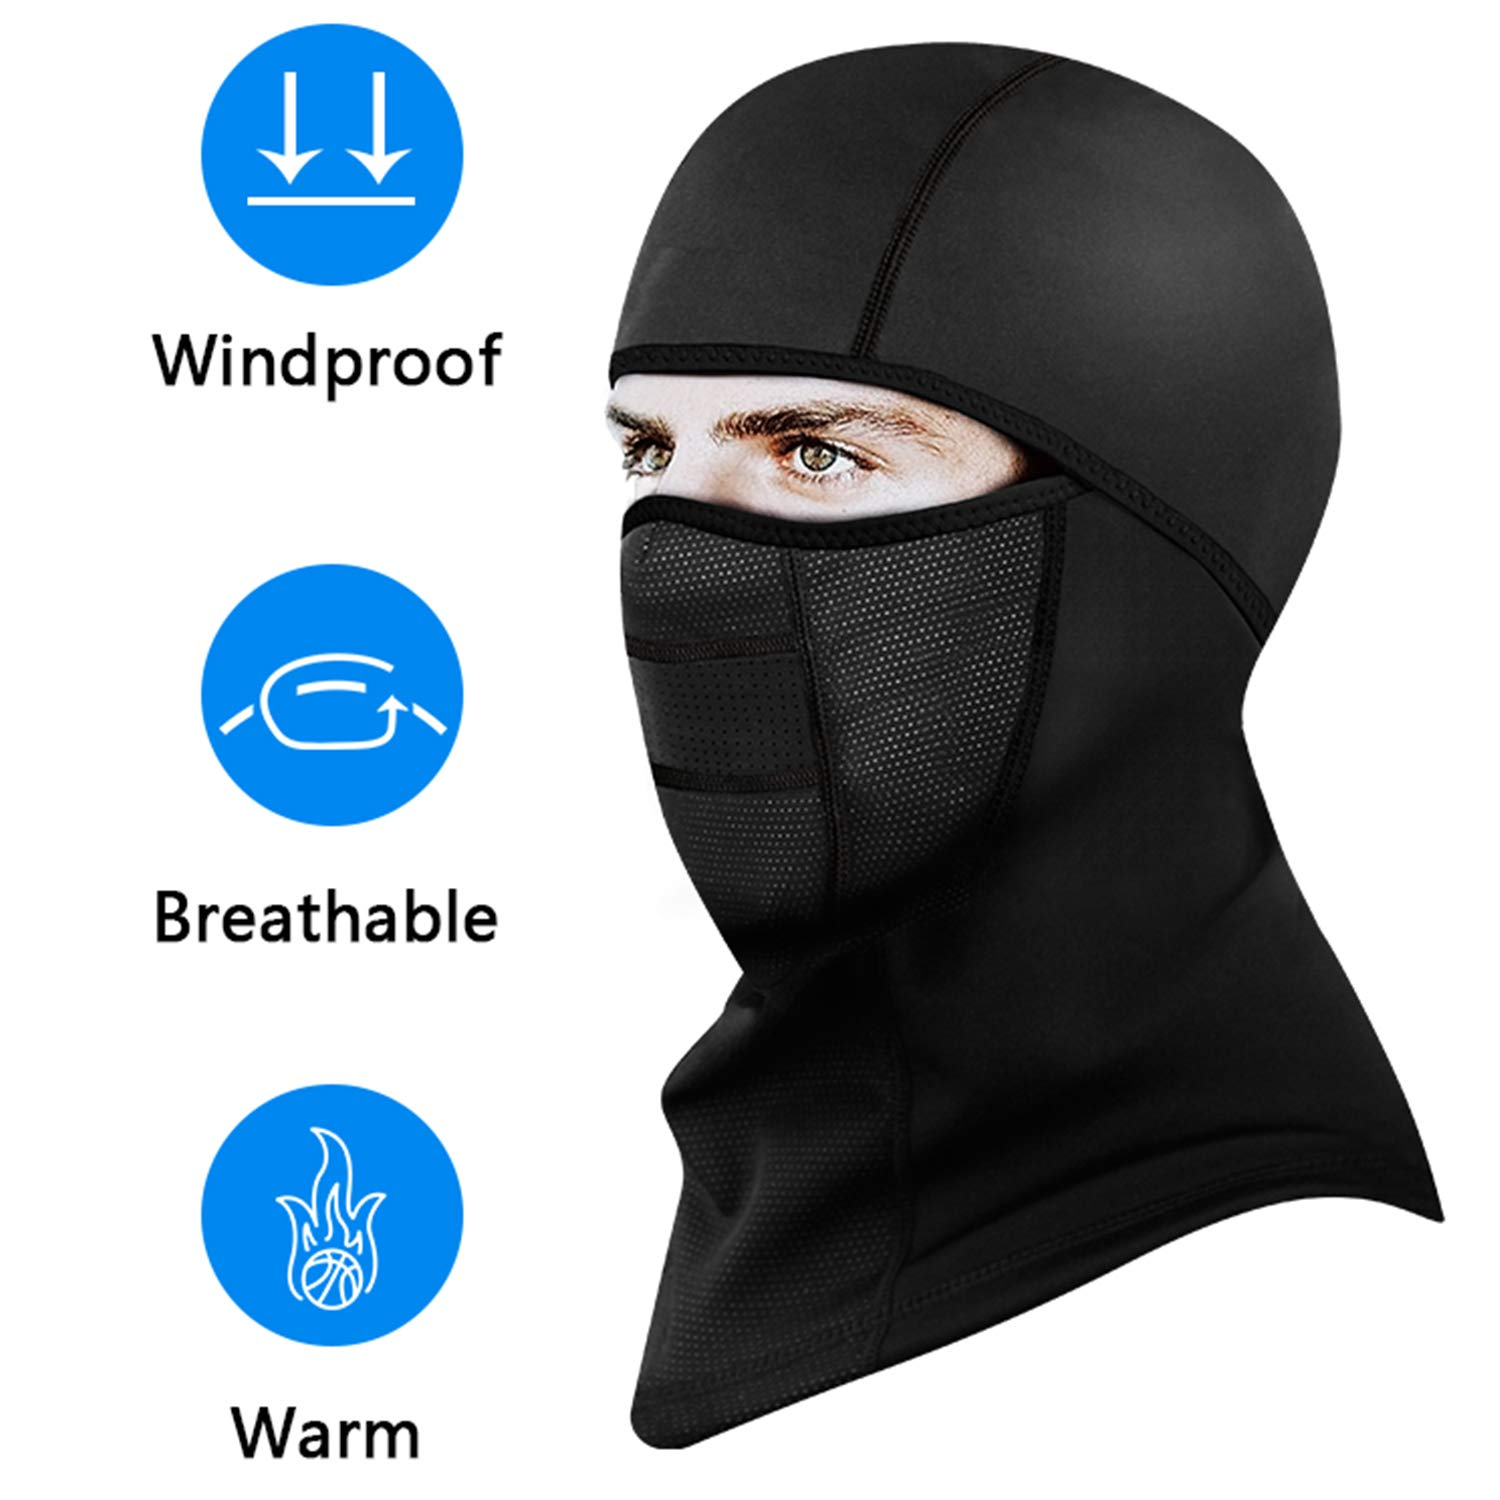 Kingoudoor Balaclava Ski Mask - Winter Motorcycle Face Mask Windproof with Breathable Vents for Men/Women